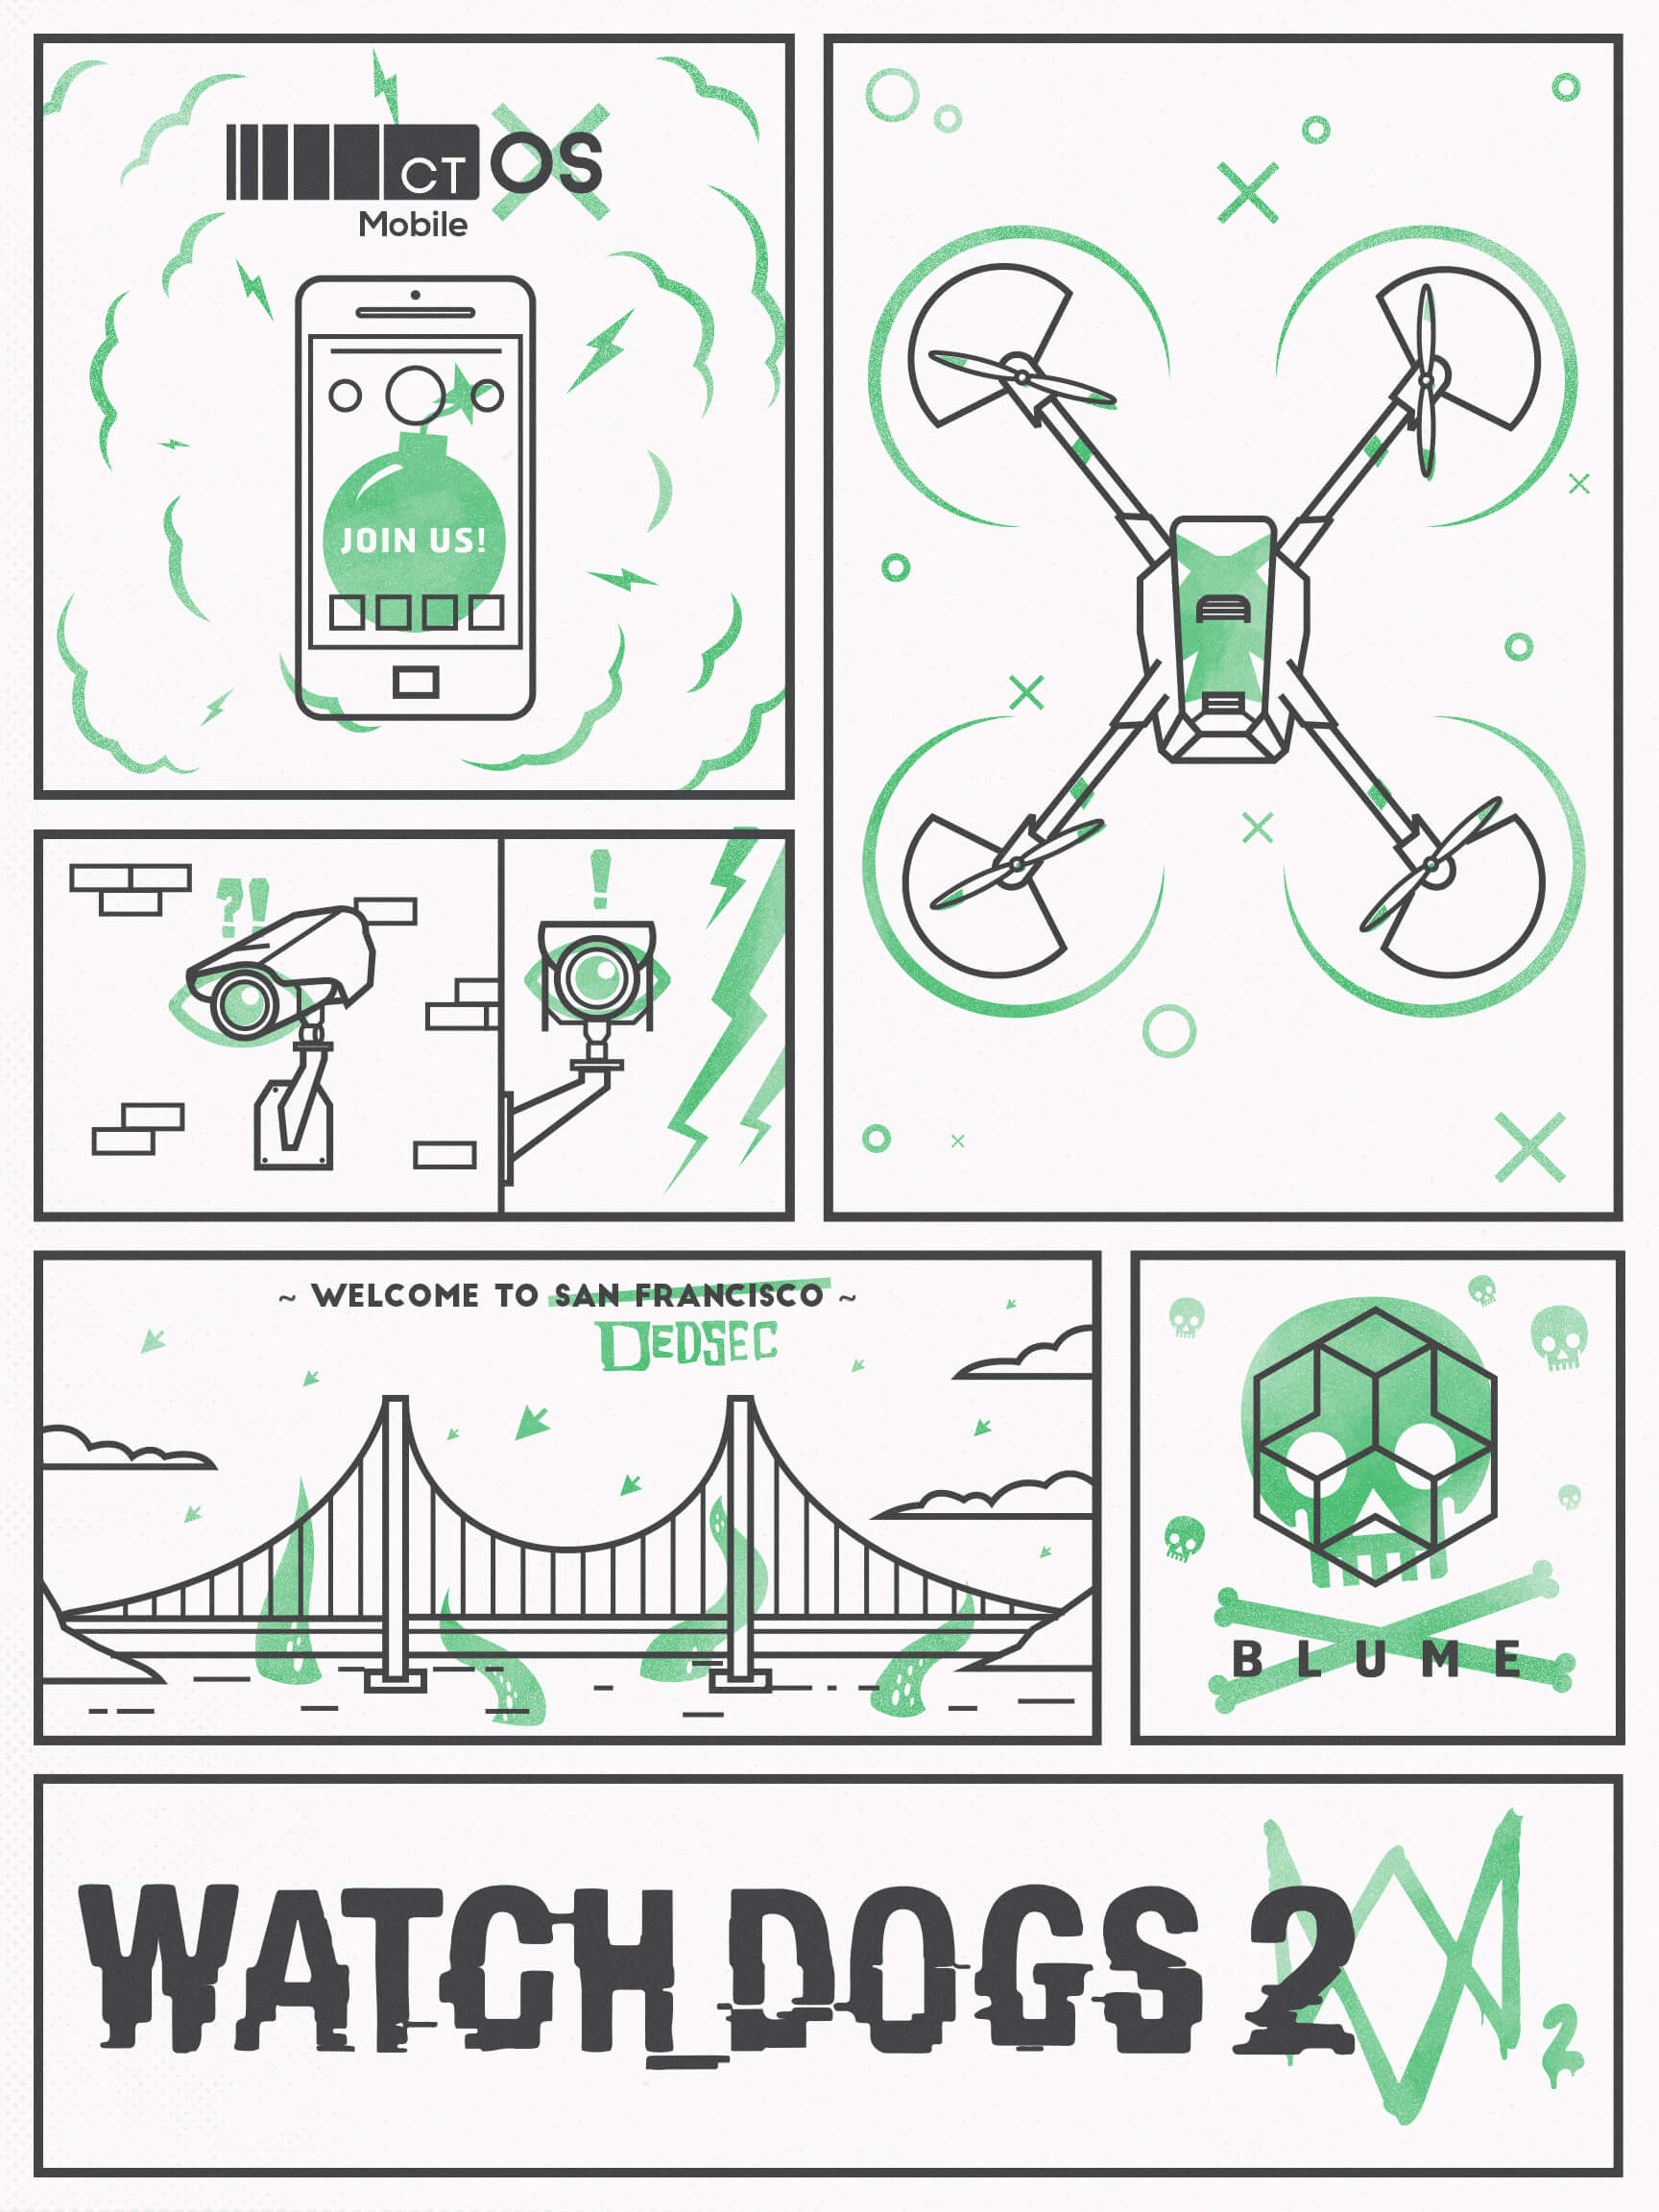 watchdogs2_poster_final_green